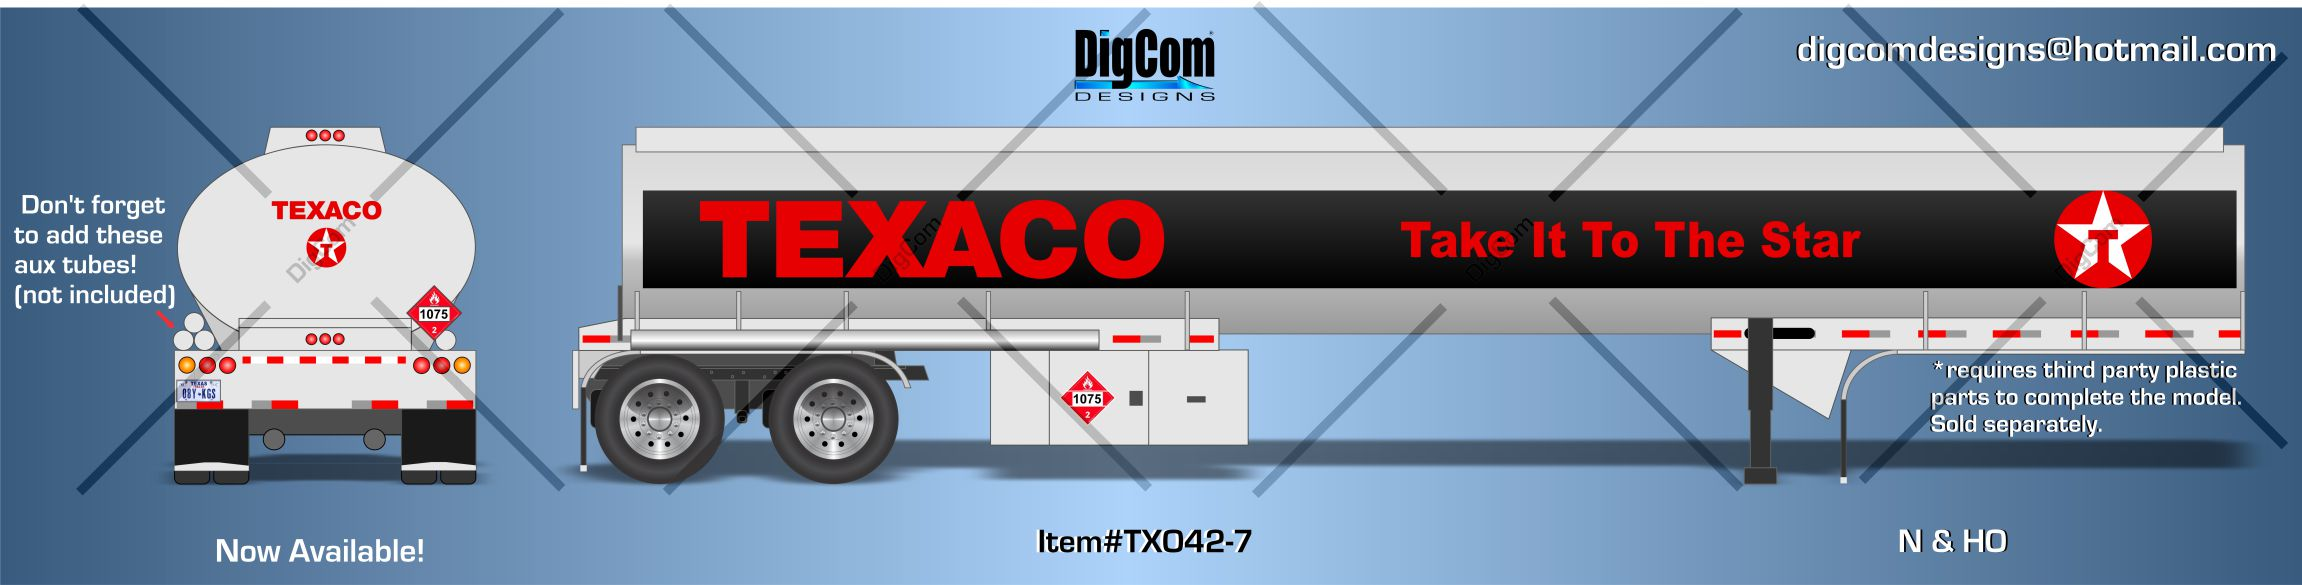 TEXACO TANKER DESIGN.jpg